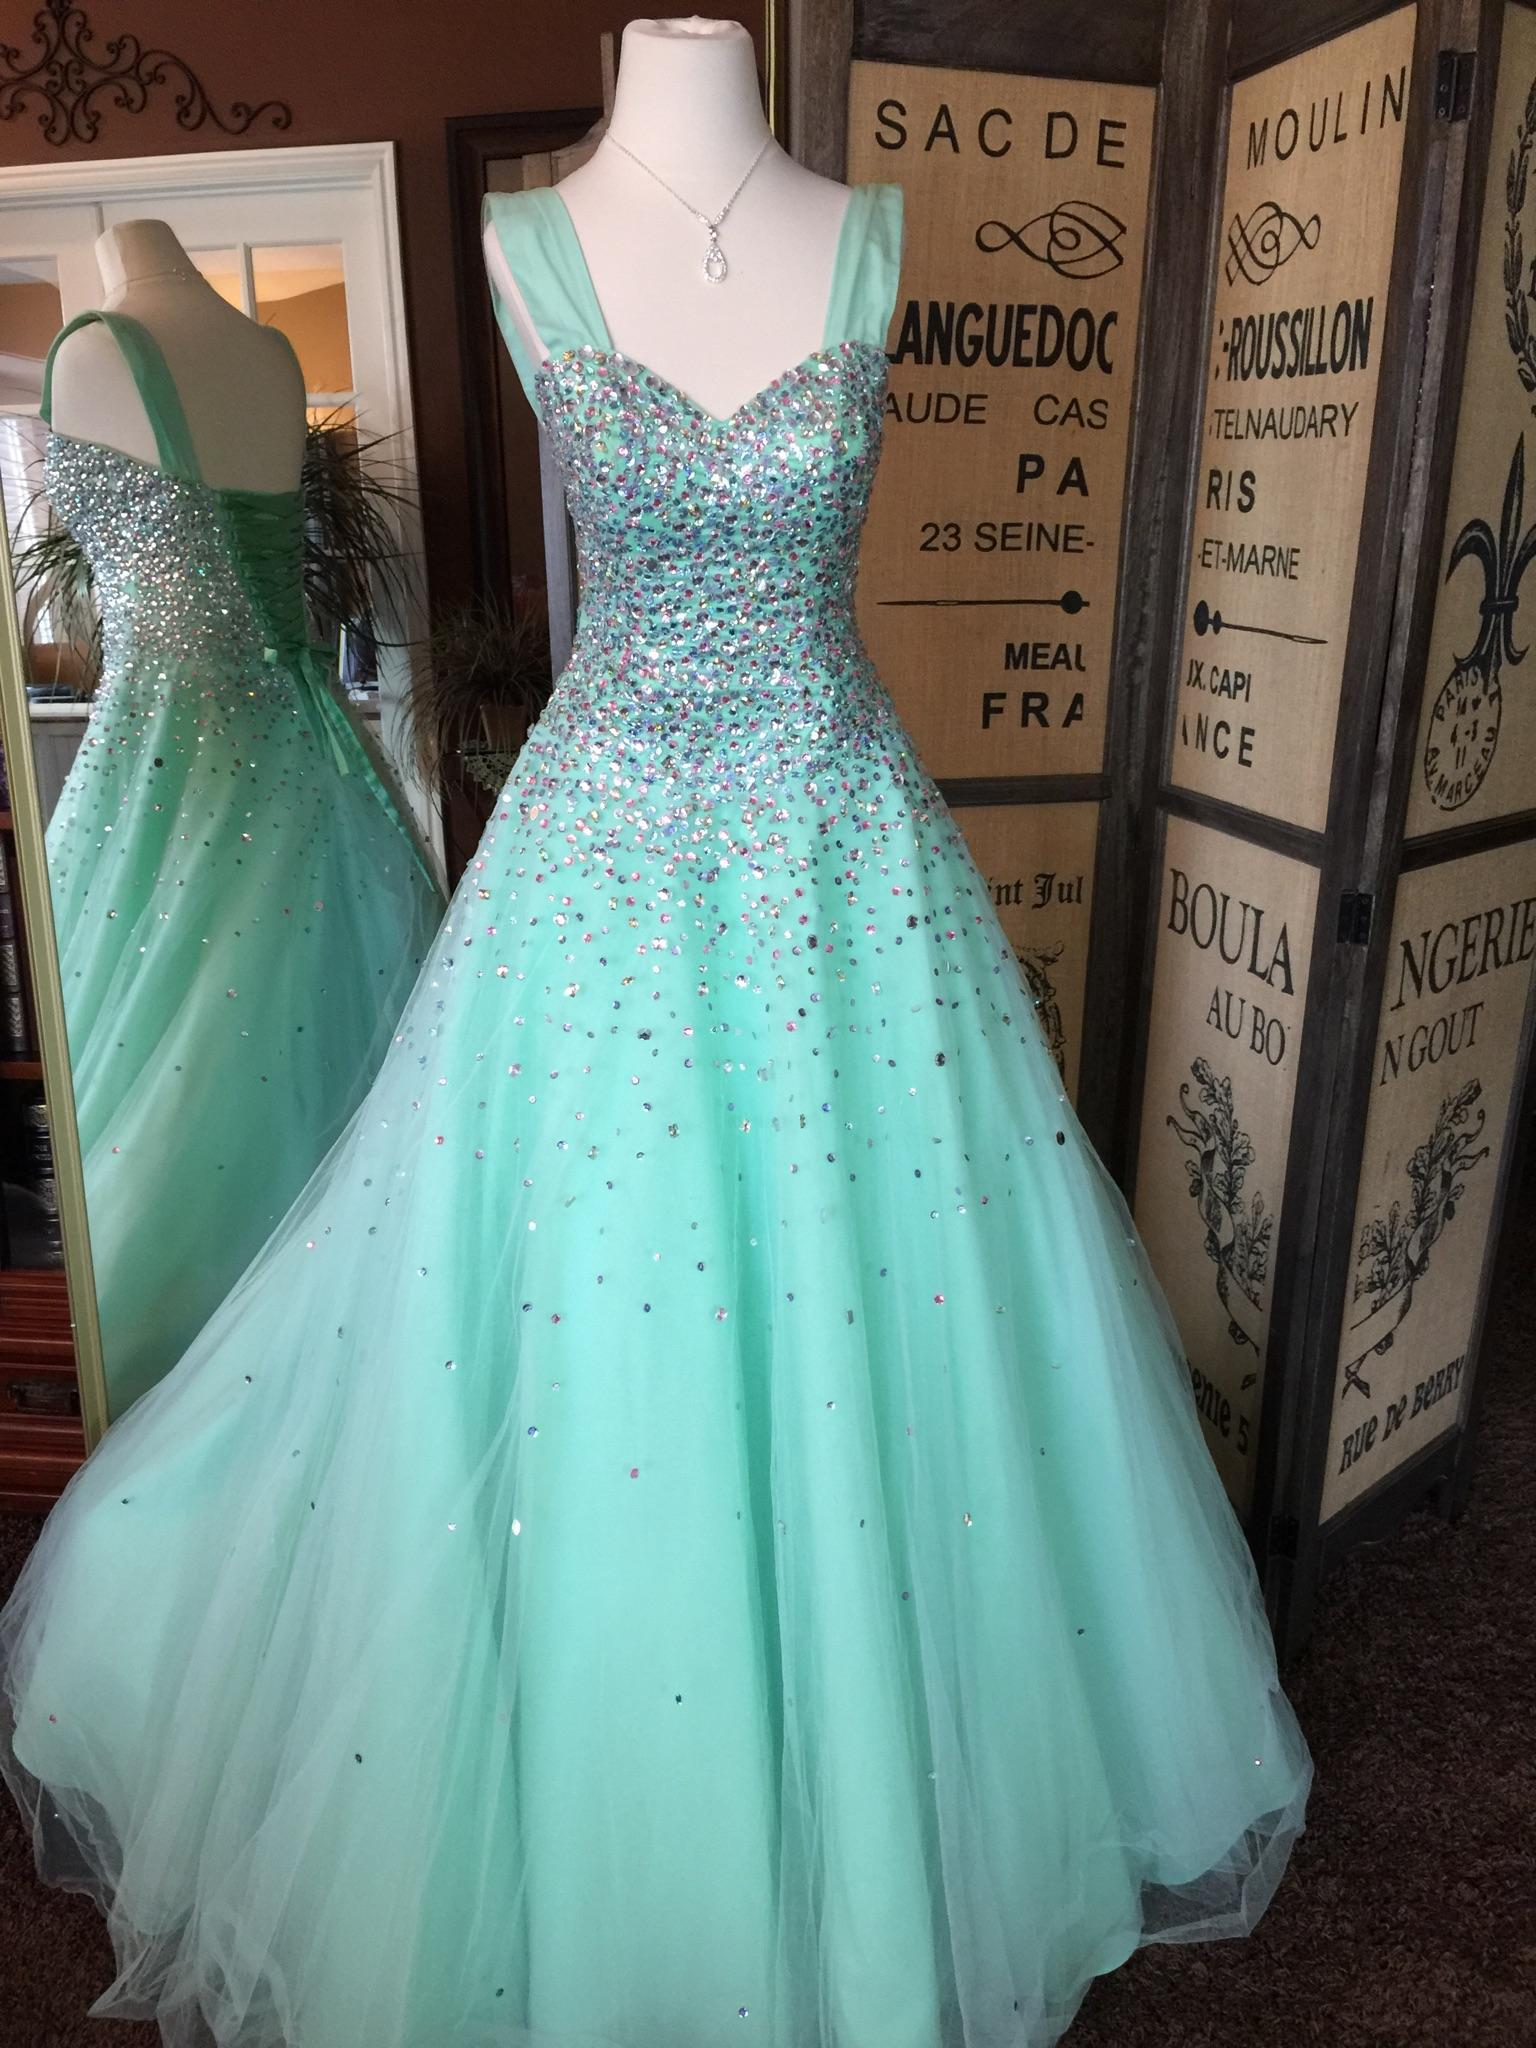 02-0019   Size 2